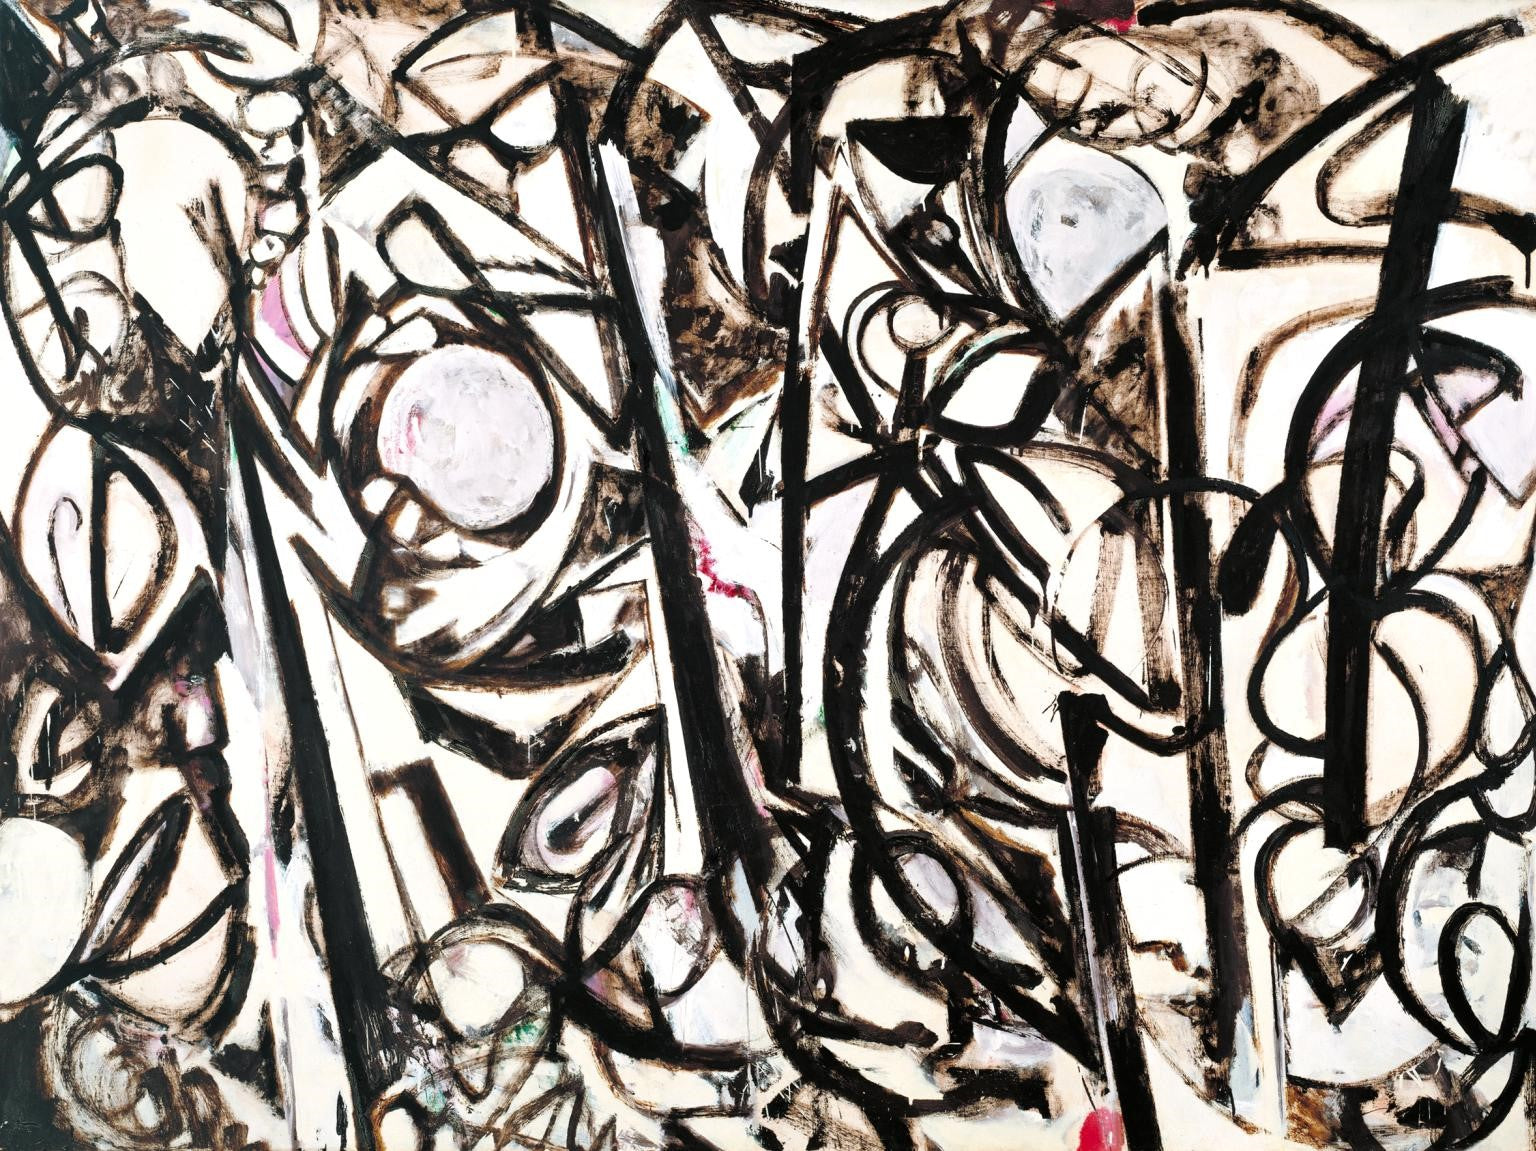 Lee Krasner, Gothic Landscape, 1961, image via Tate, London